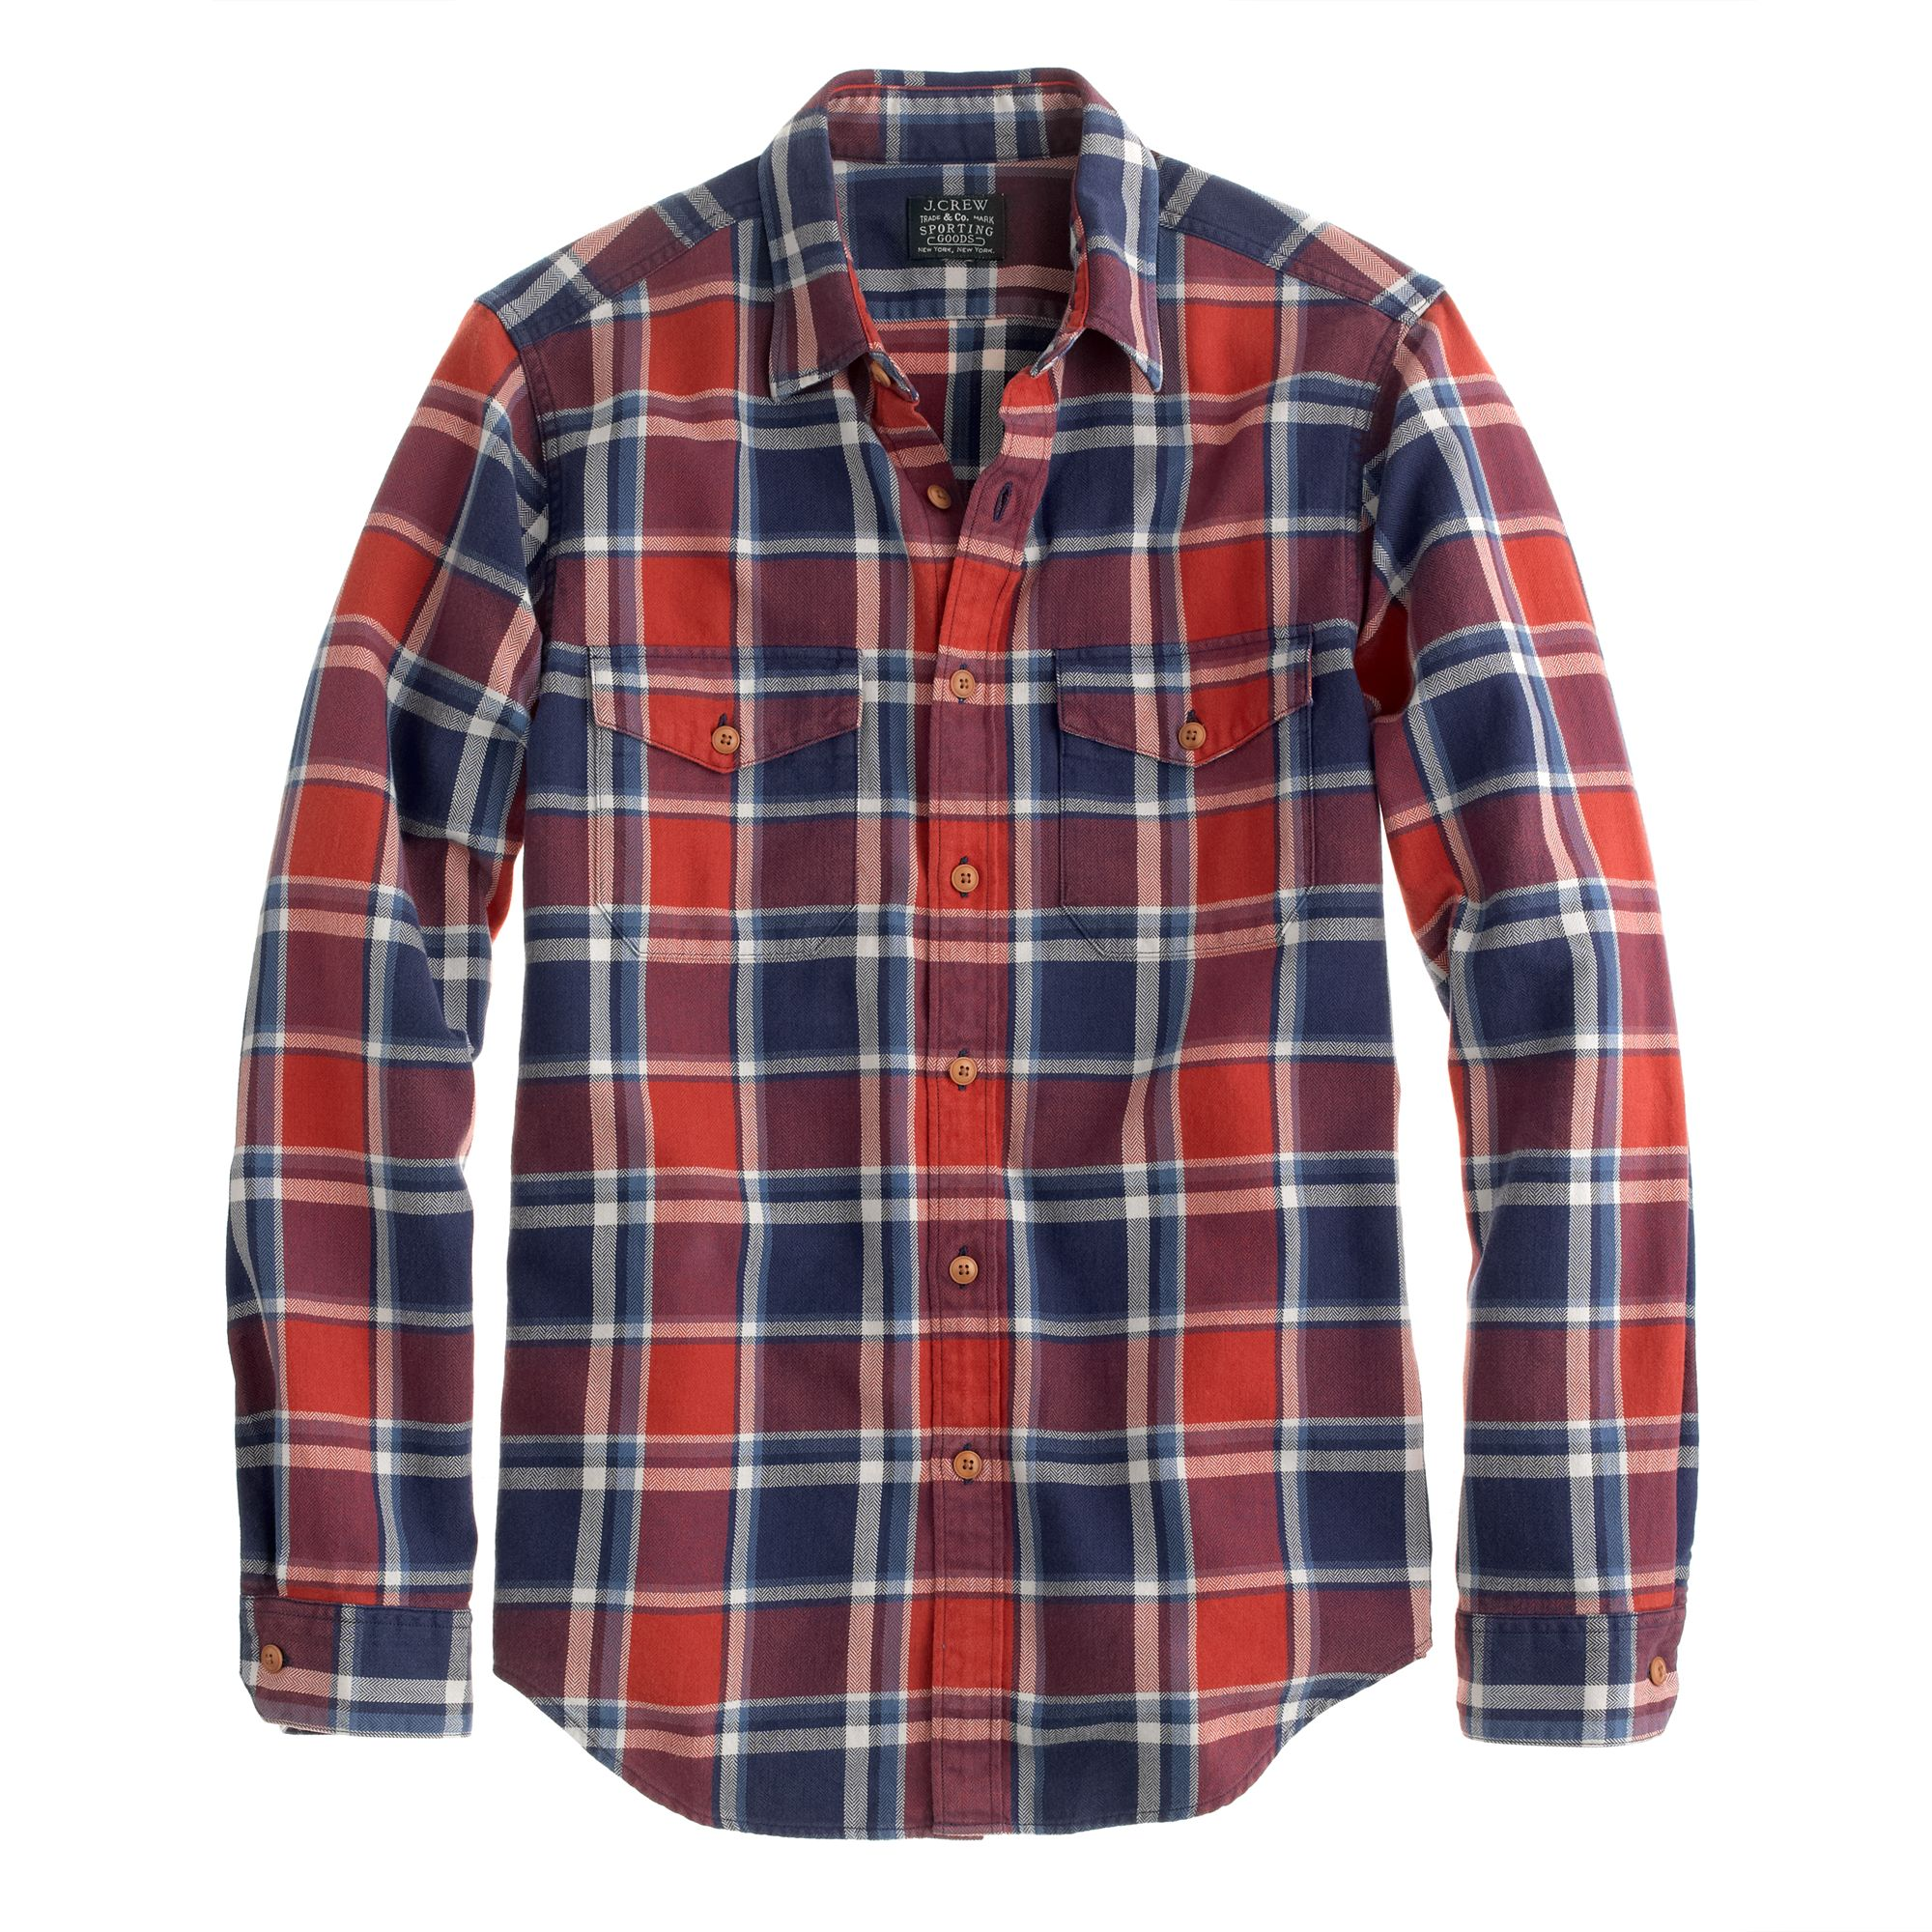 J Crew Flannel Shirt In Cerise Plaid In Red For Men Lyst